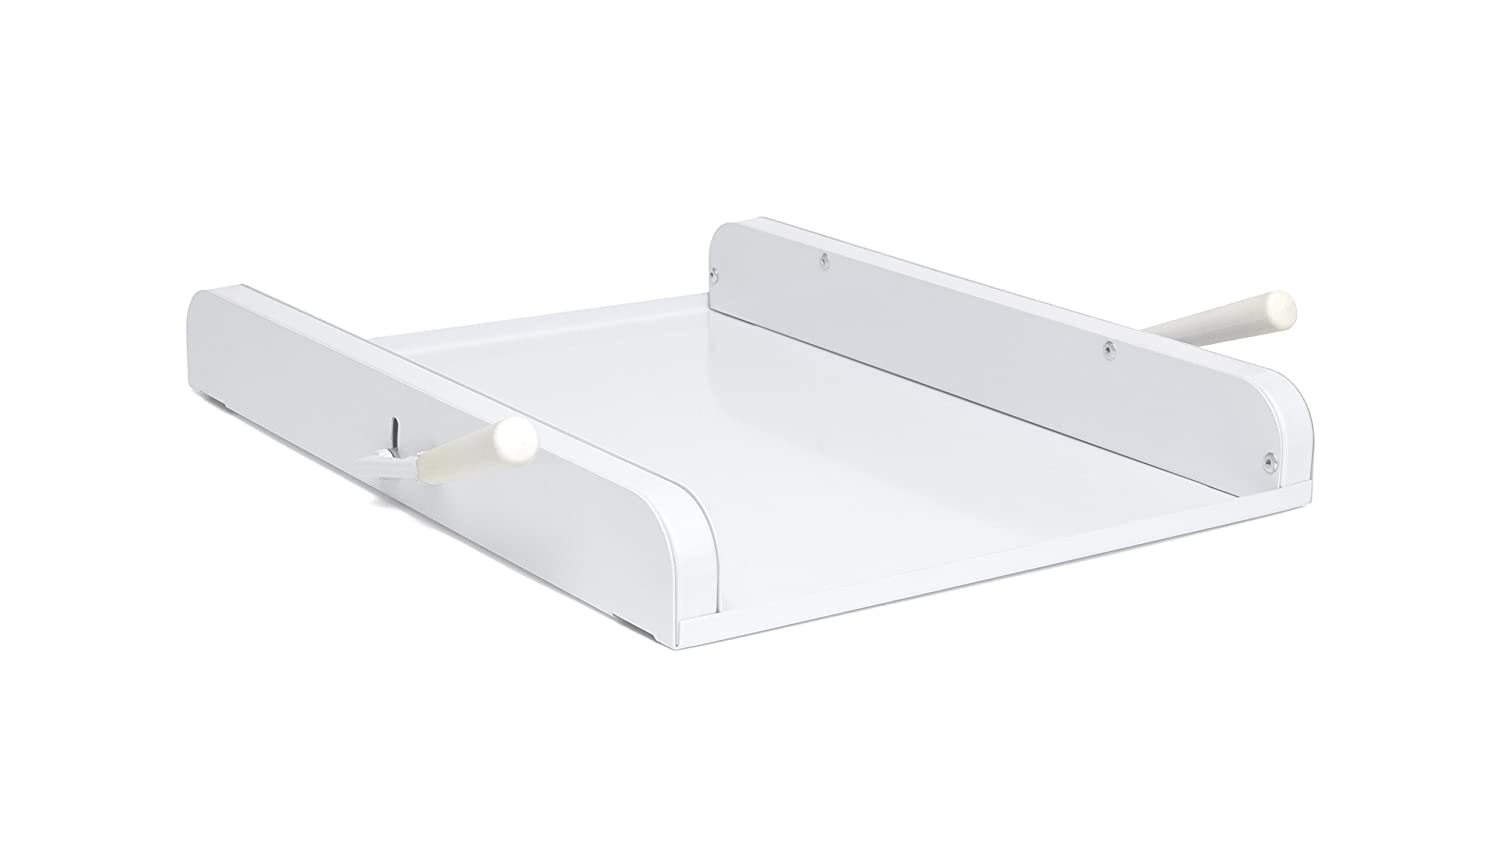 "Lipper International 8701W Rolling Platform for Mixers and Appliances, 15-3/4"" x 11-7/8"" x 2-1/8"", White"